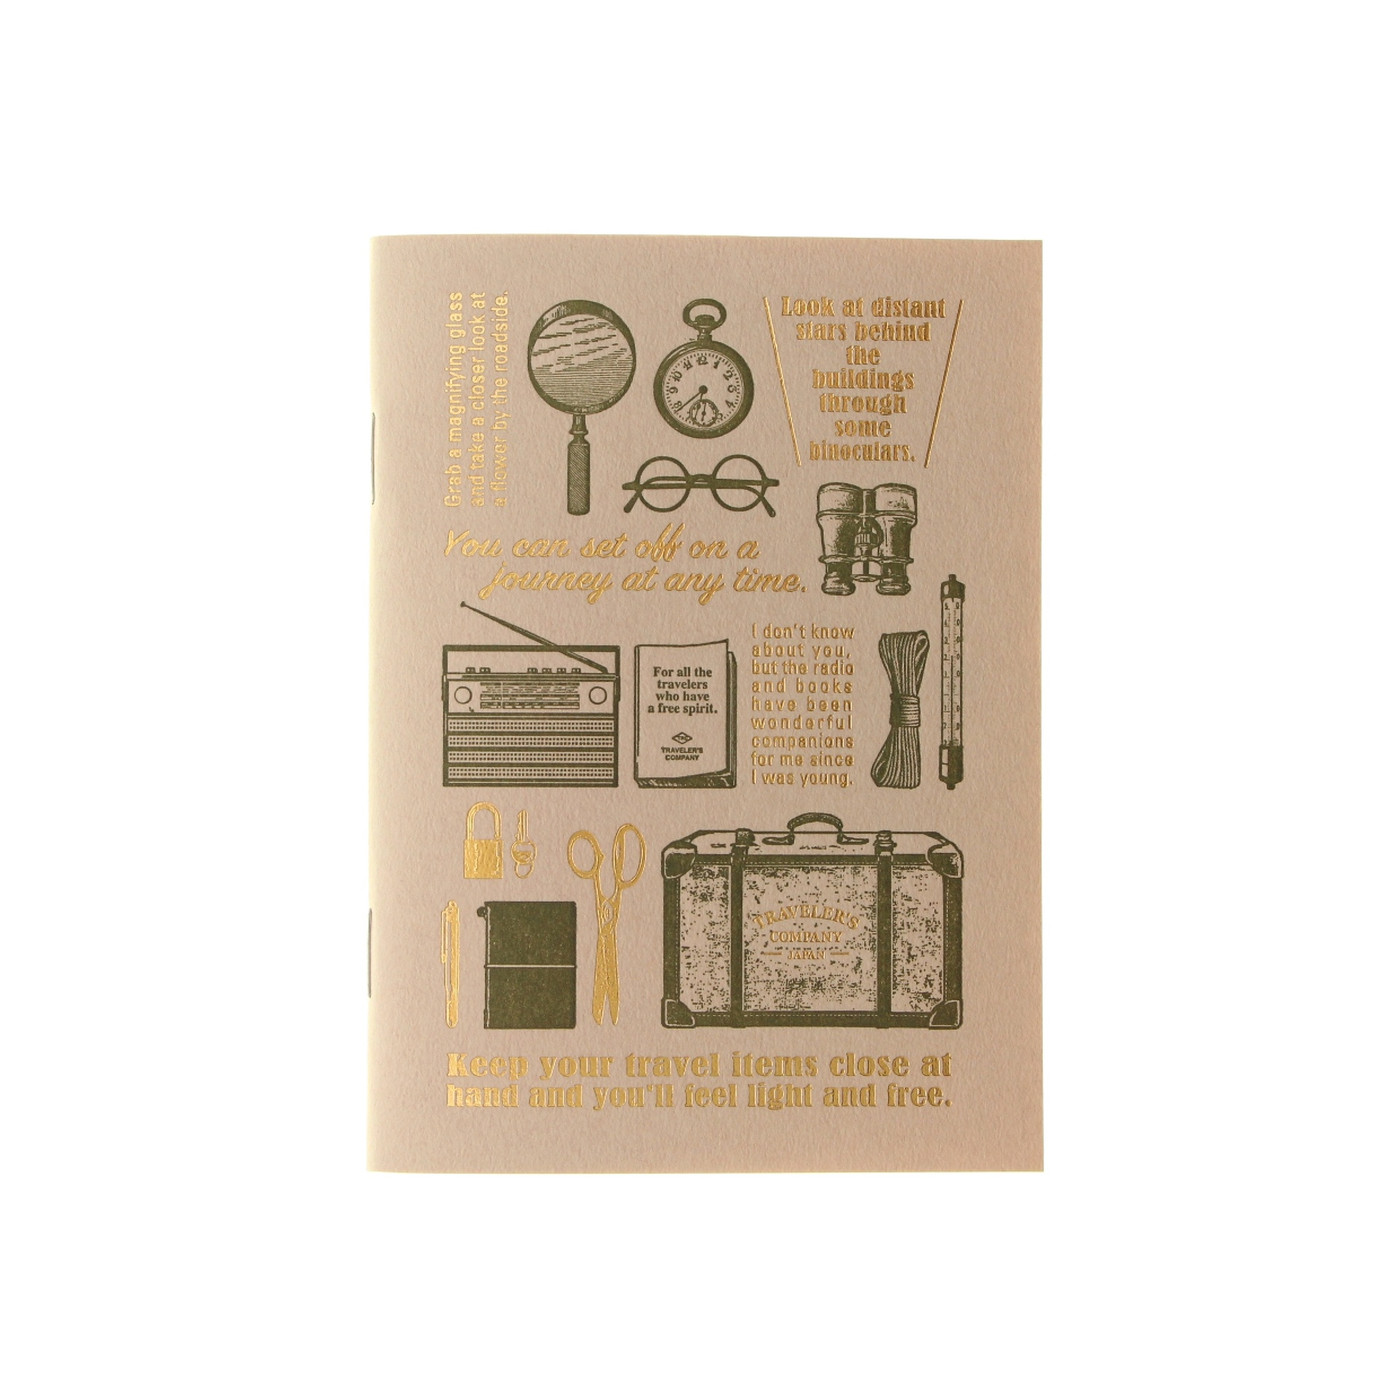 TRAVELER'S COMPANY Travel Tools - notebook refill - passport size